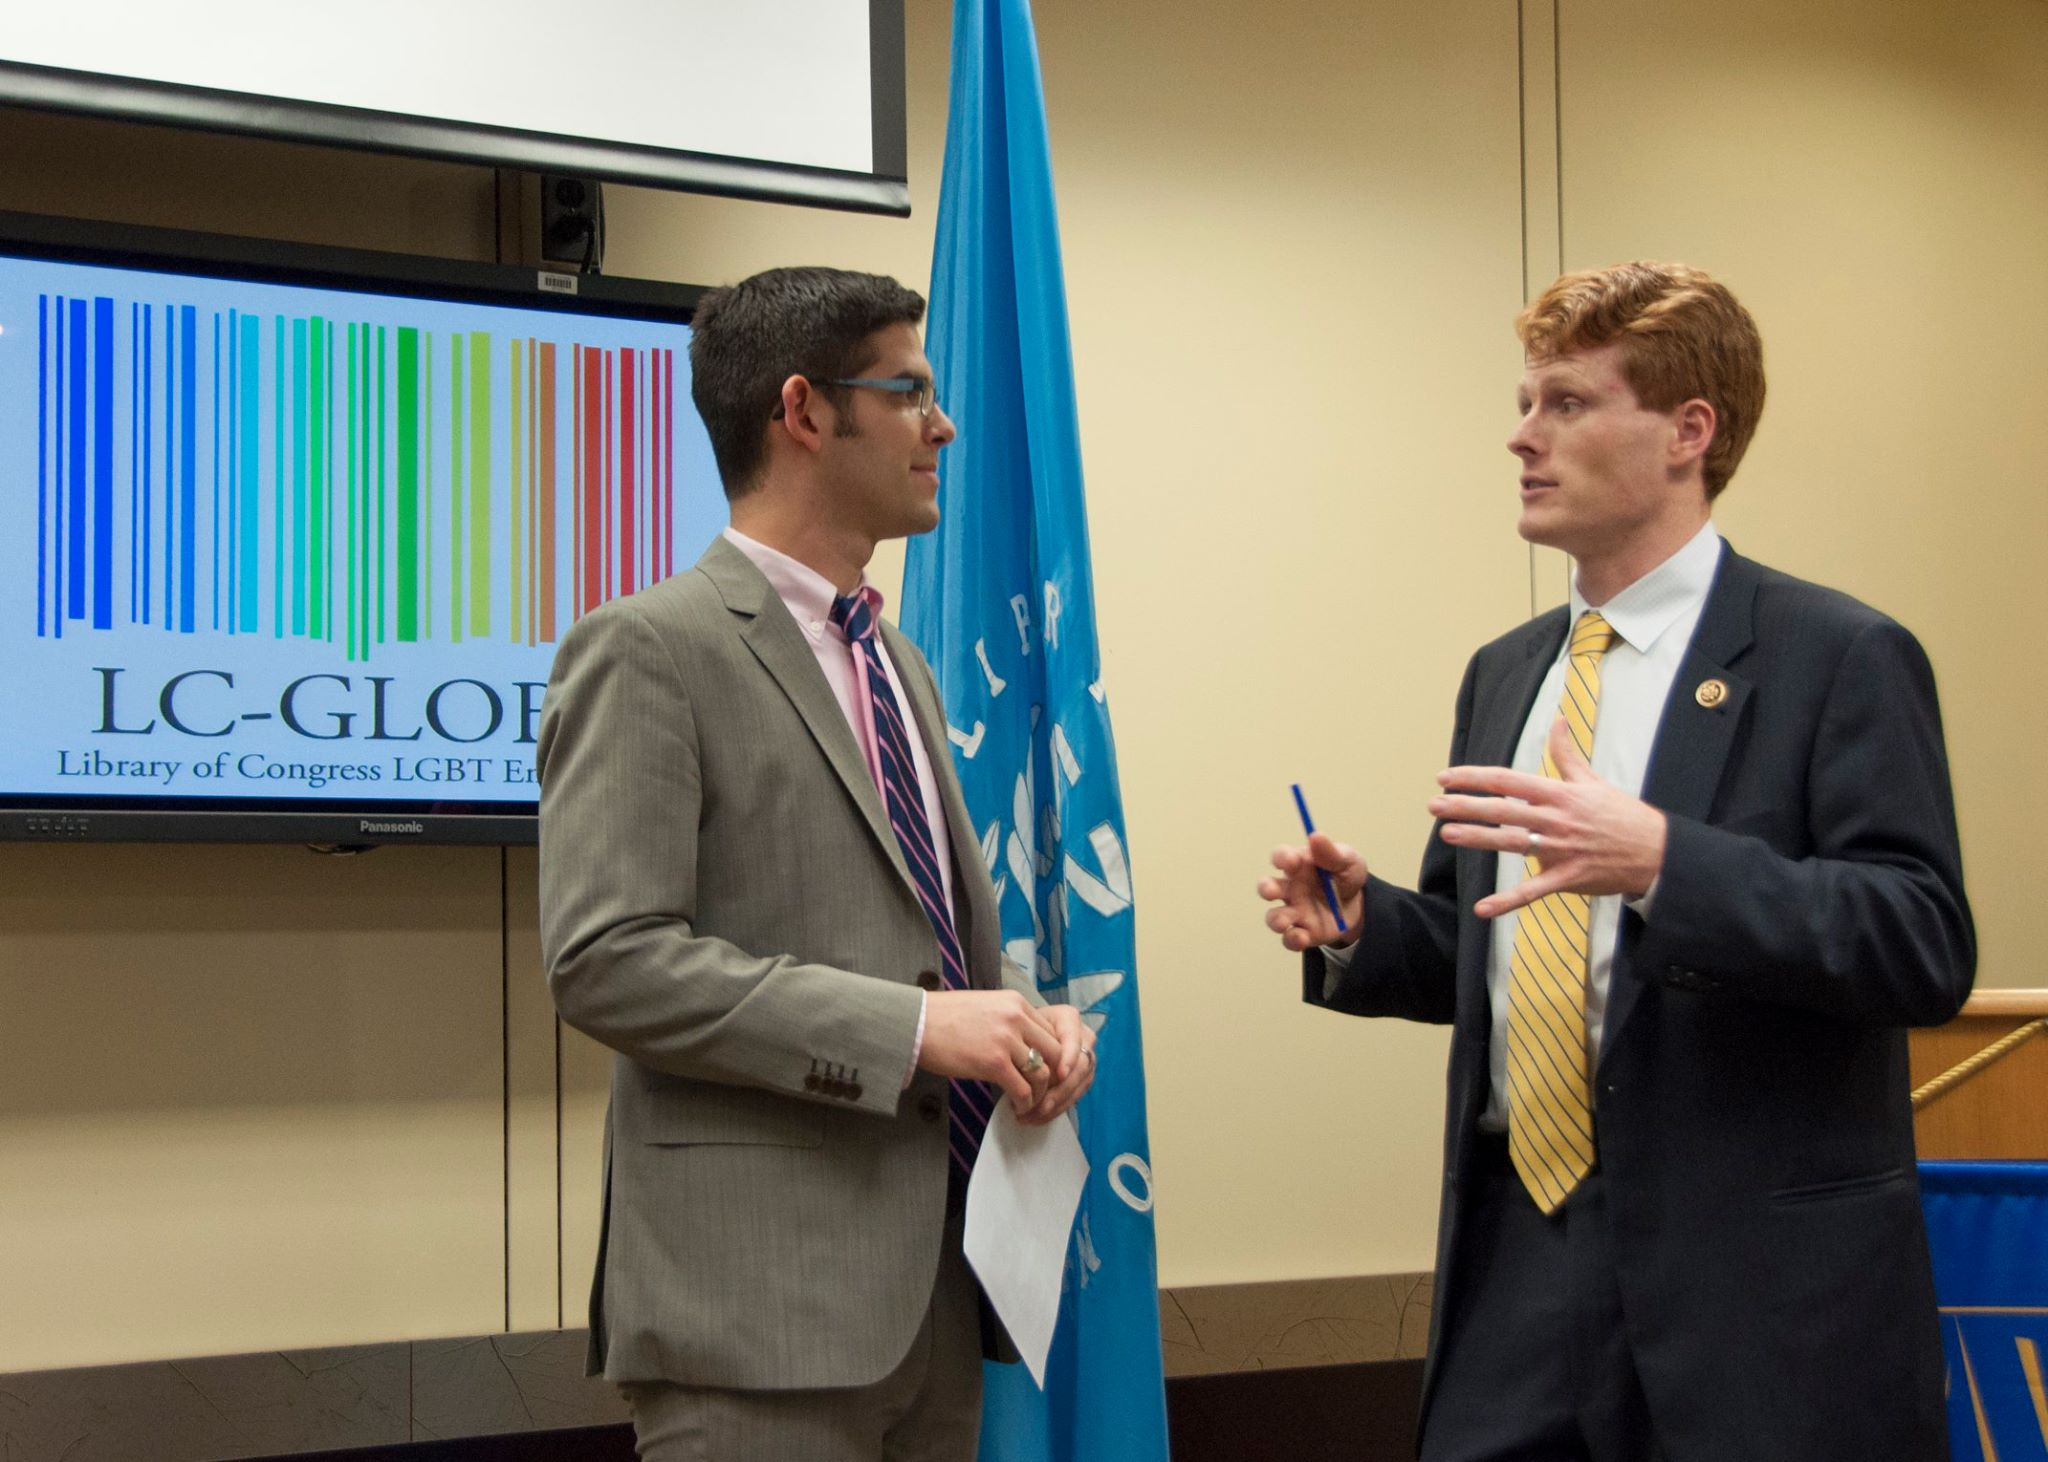 Nicholas with Rep. Joe Kennedy III